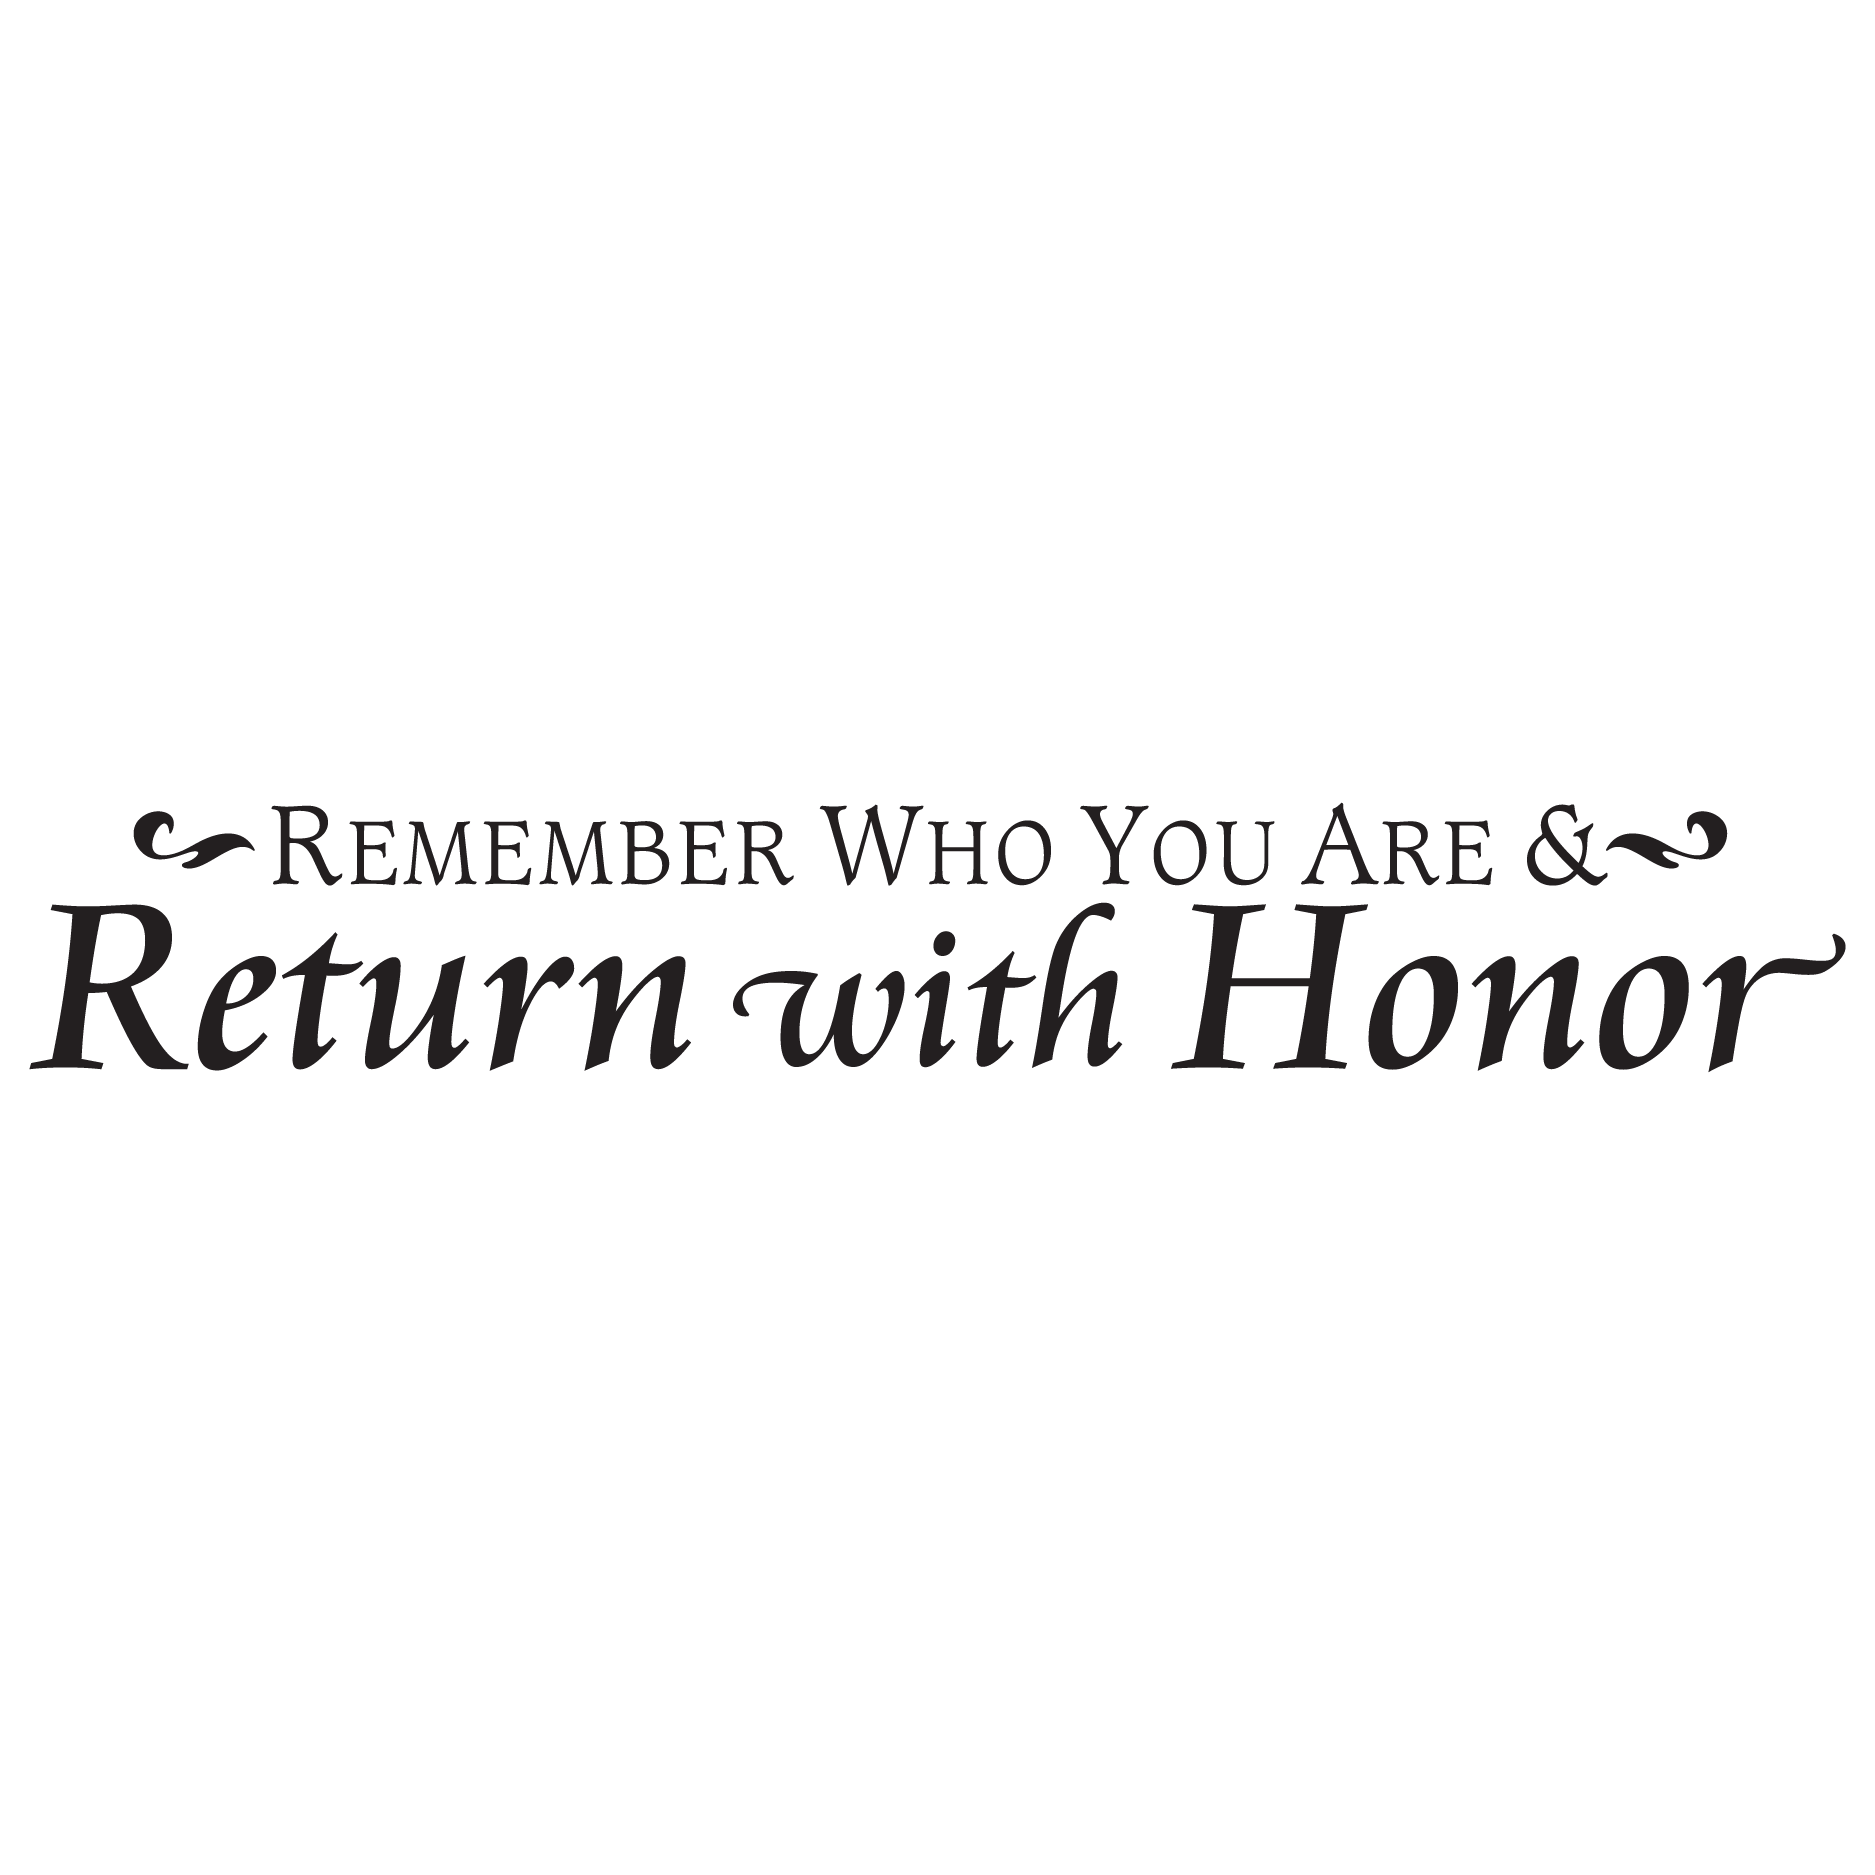 return with honor traditional wall quotes decal wallquotes com